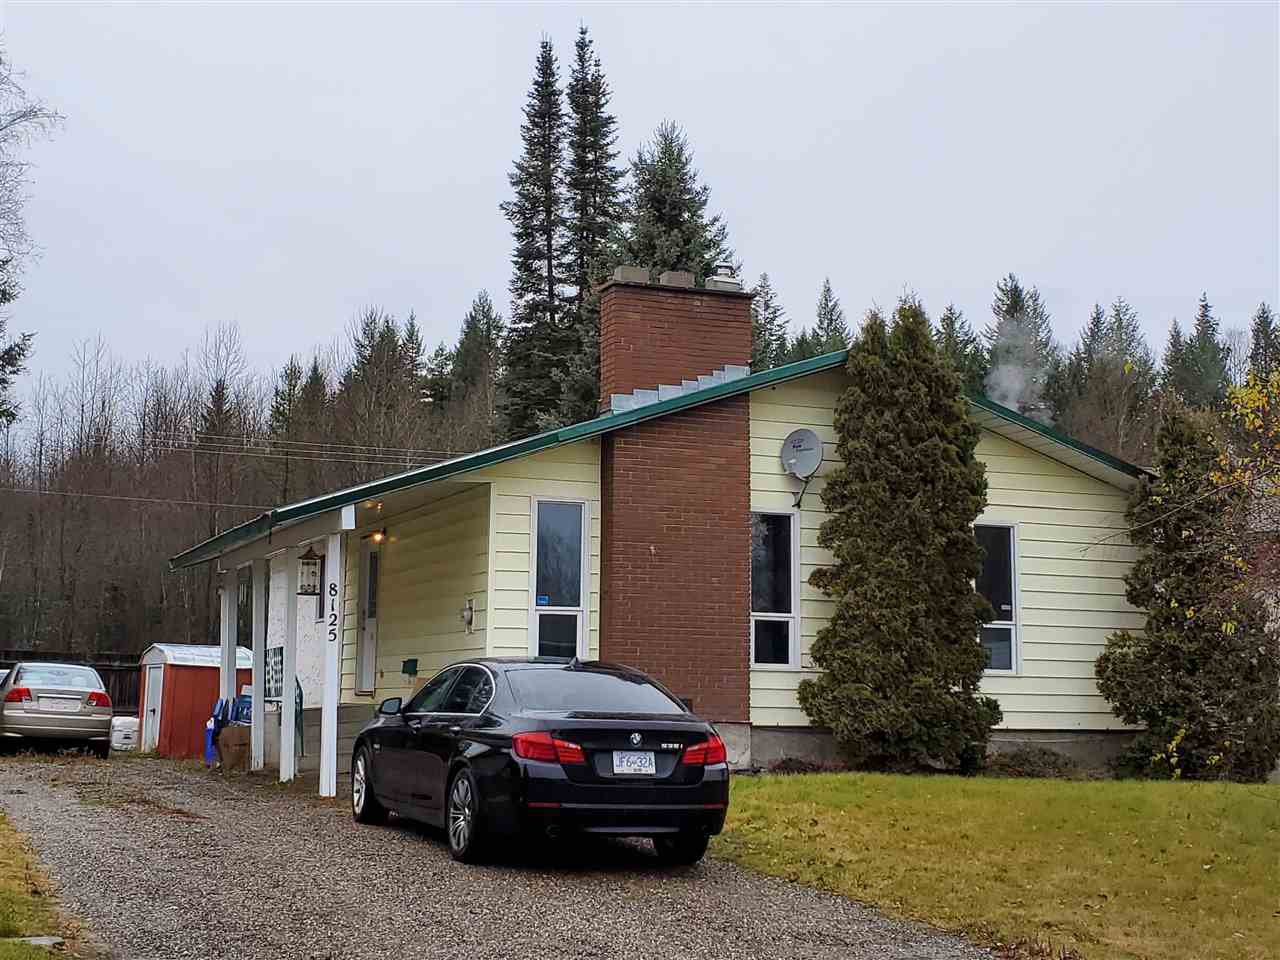 """Main Photo: 8125 ROCHESTER Crescent in Prince George: Lower College House for sale in """"LOWER COLLEGE HEIGHTS"""" (PG City South (Zone 74))  : MLS®# R2418789"""